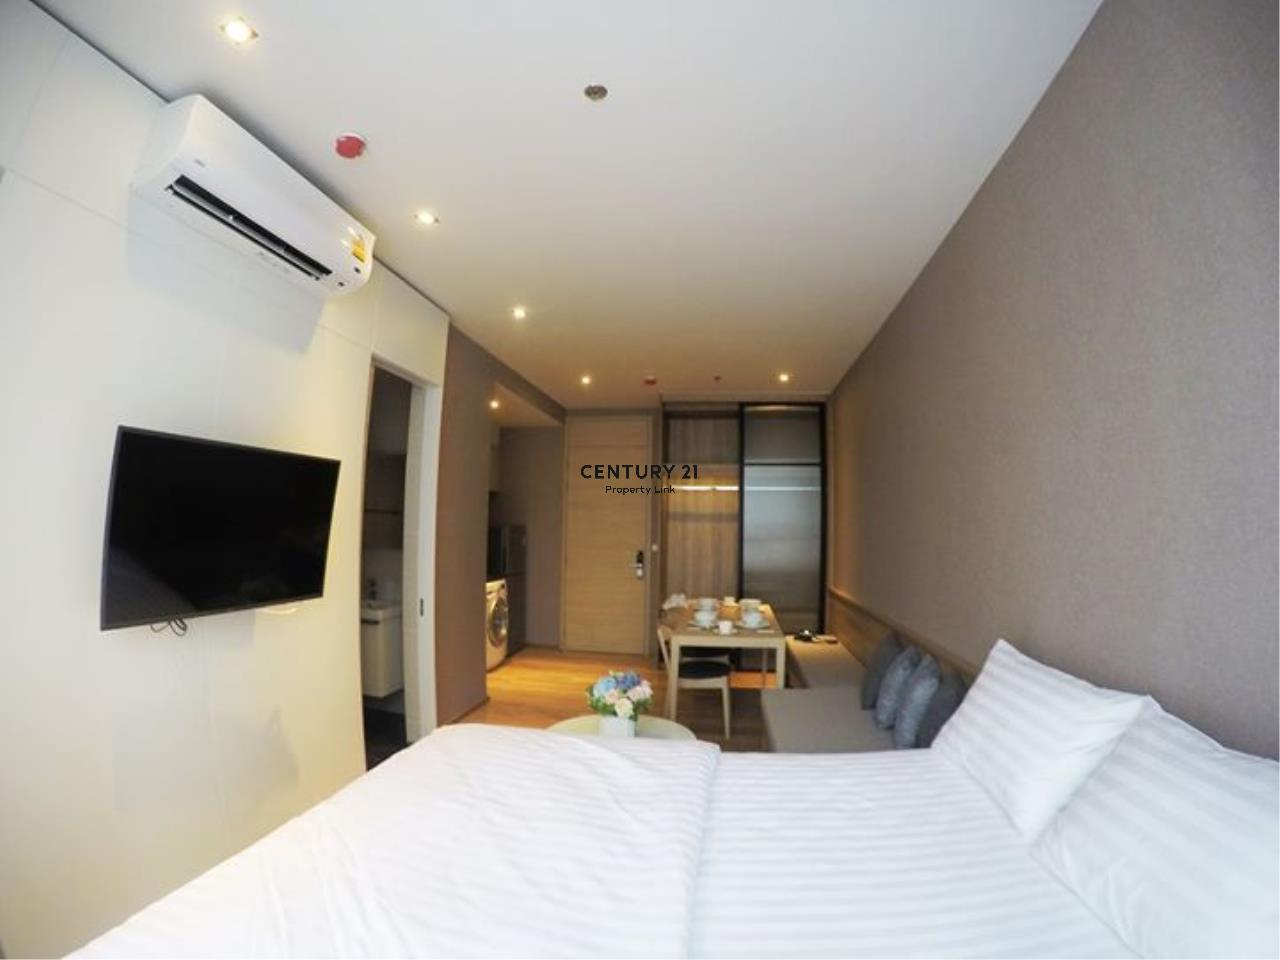 Century21 Property Link Agency's 39-CC-61512 Park 24 Room For Sale/ Rent 1 Bedroom Near BTS Phrom Phong Sale price 7.57MB./ 28,000THB/ month 1